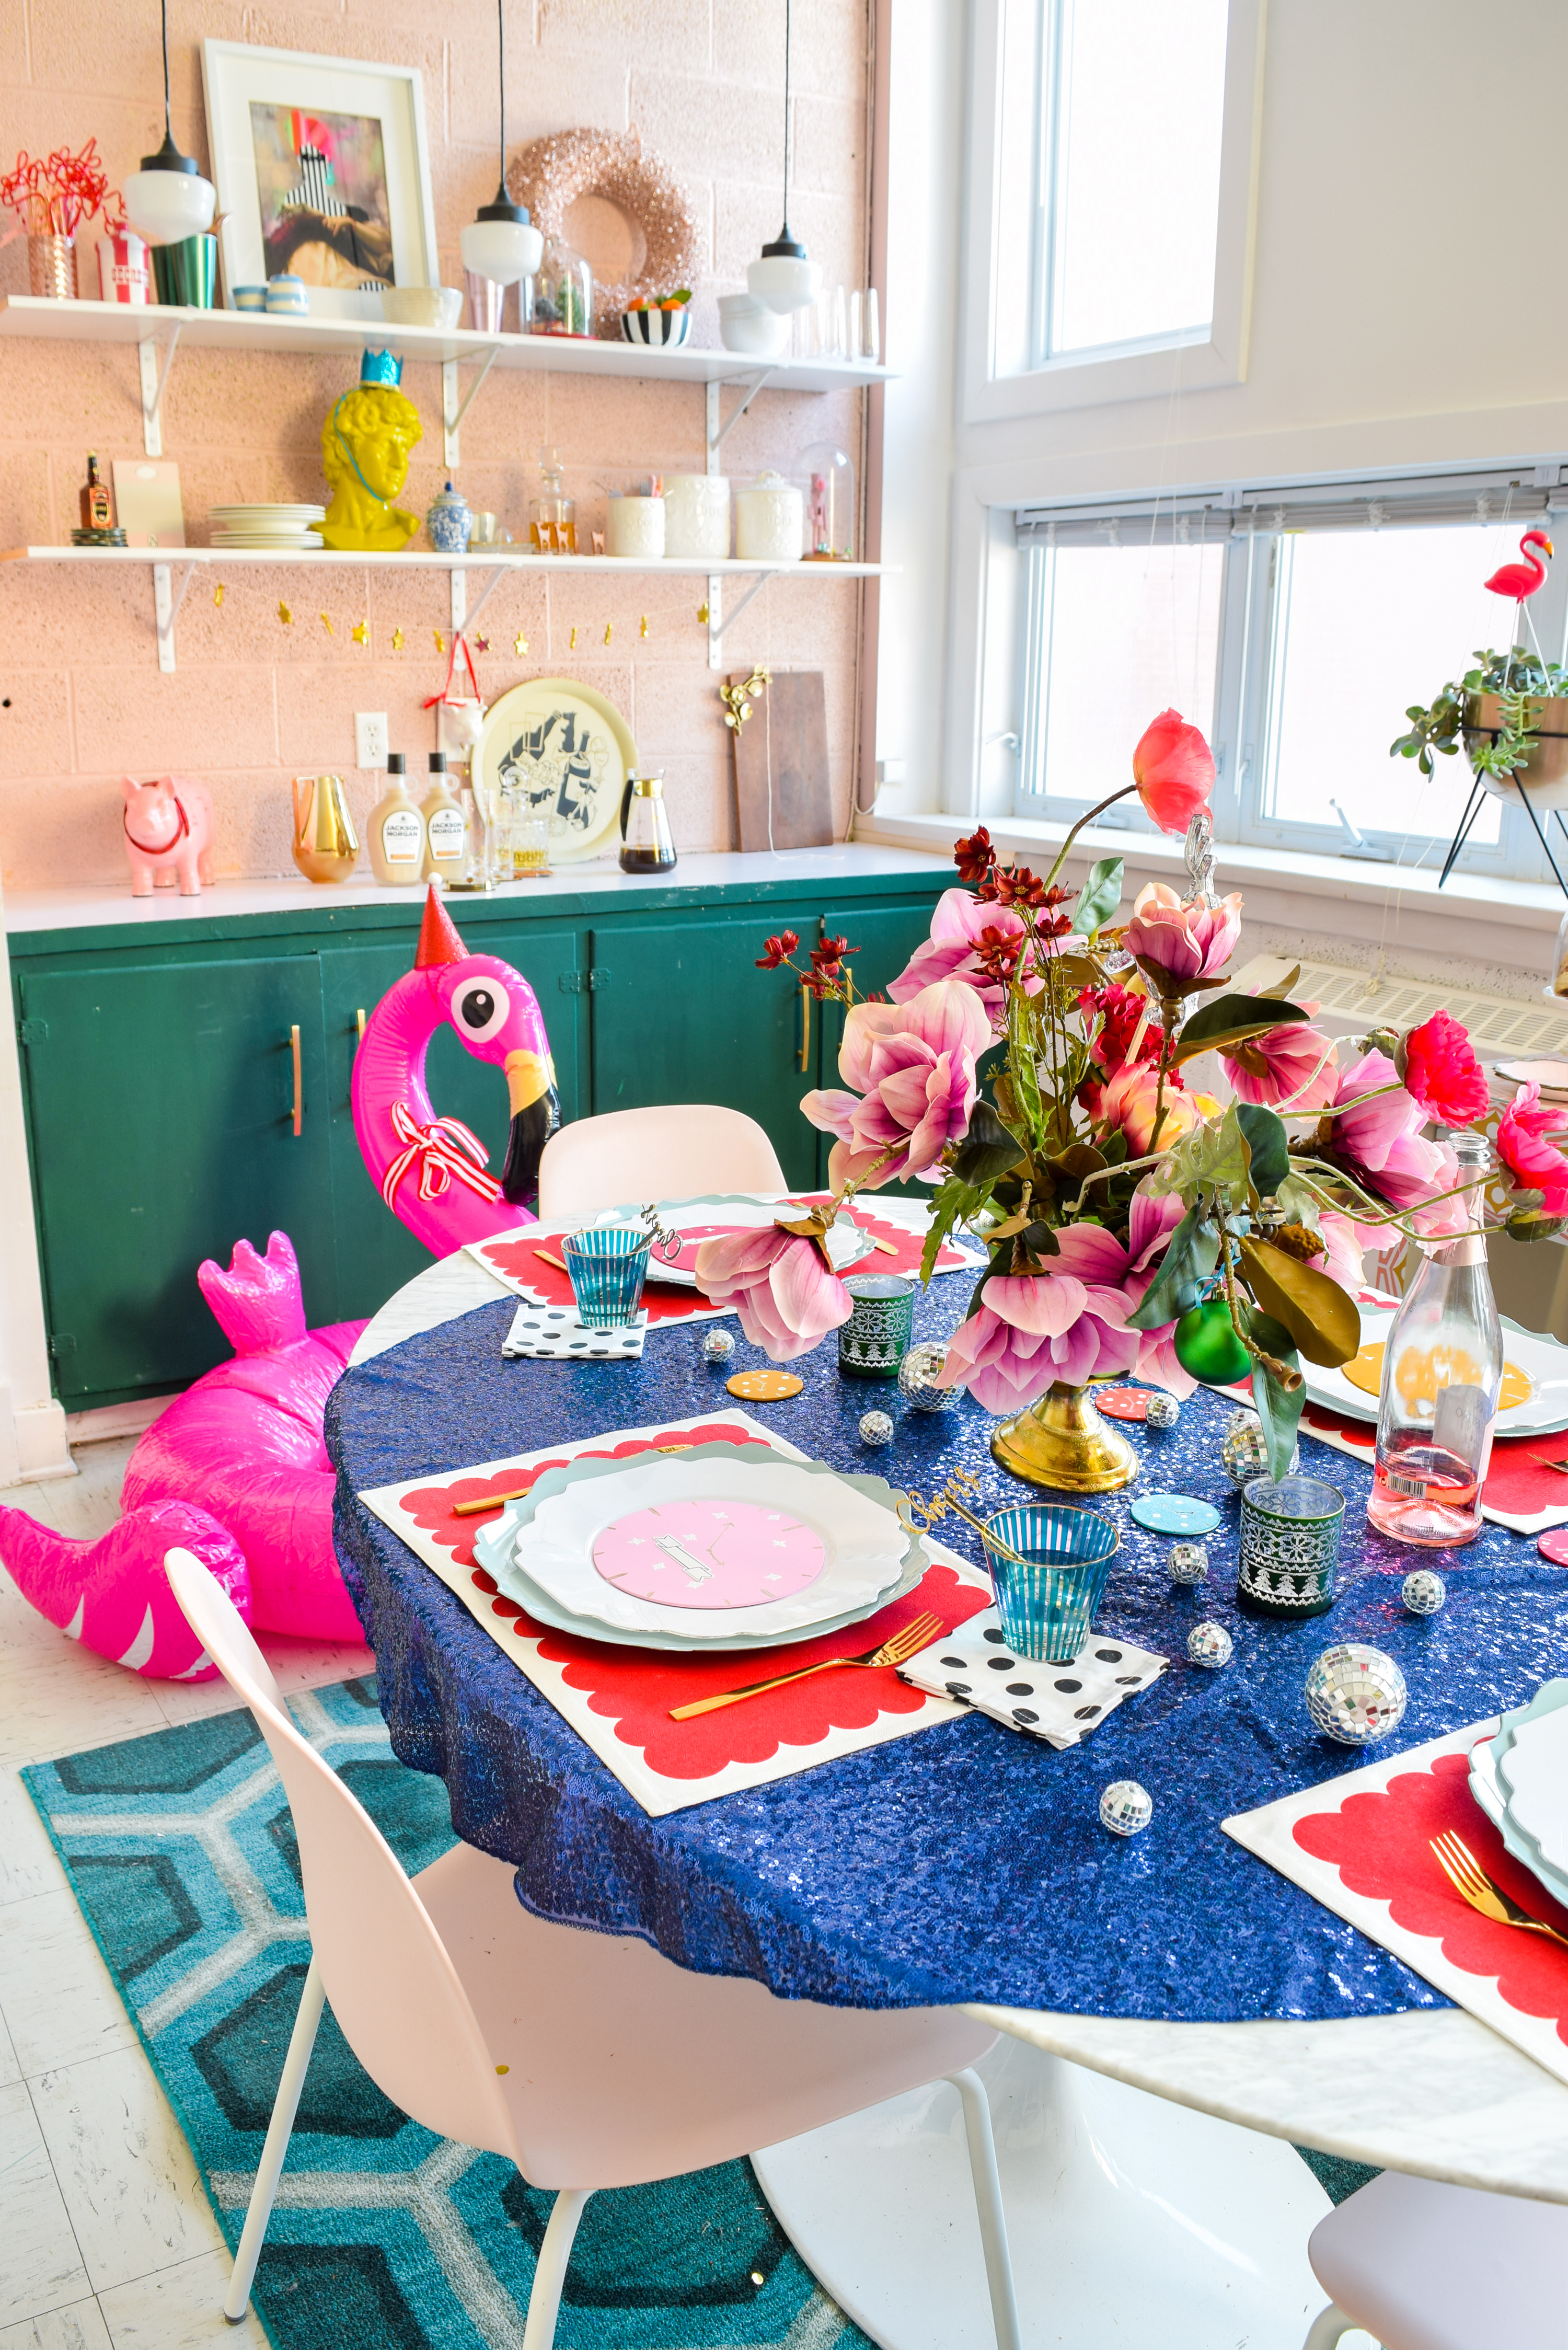 For my Kate Spade New Years Eve Tablescape you bet I went glitzy and colourful, and invited an inflatable flamingo in a Santa hat. Come see what else is shaking!